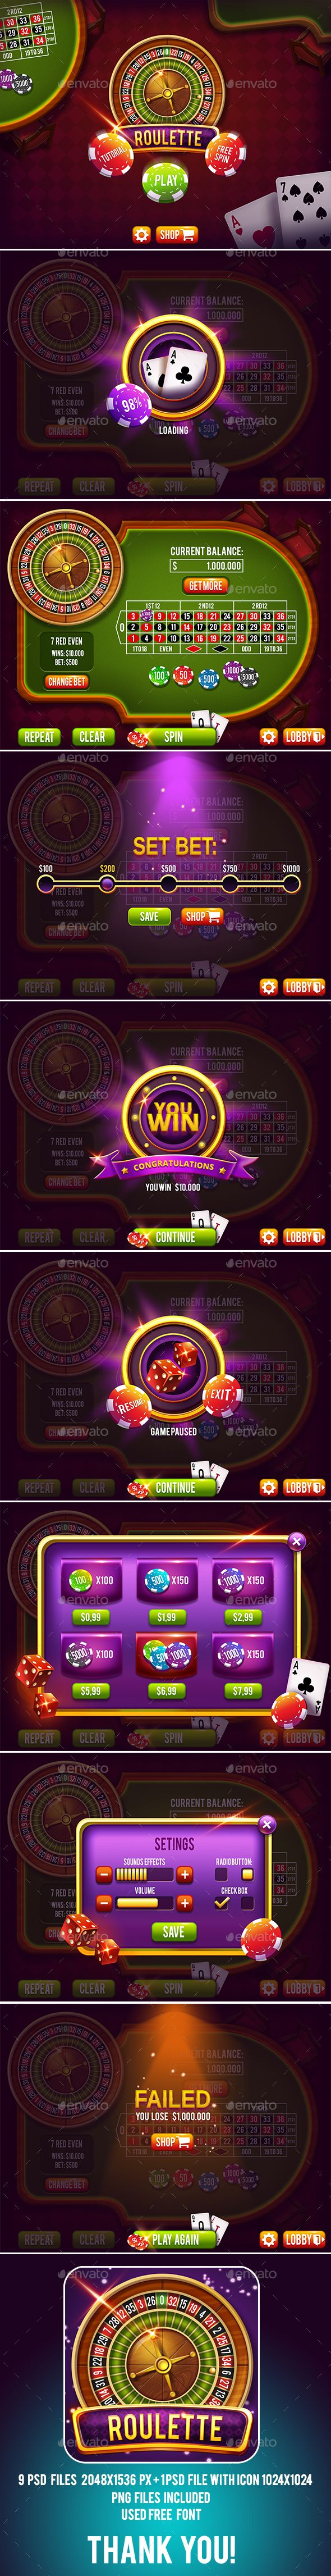 Casino Roulette Game Pack with GUI  PSD Template • Download ➝ https://graphicriver.net/item/casino-roulette-game-pack-with-gui/17049686?ref=pxcr